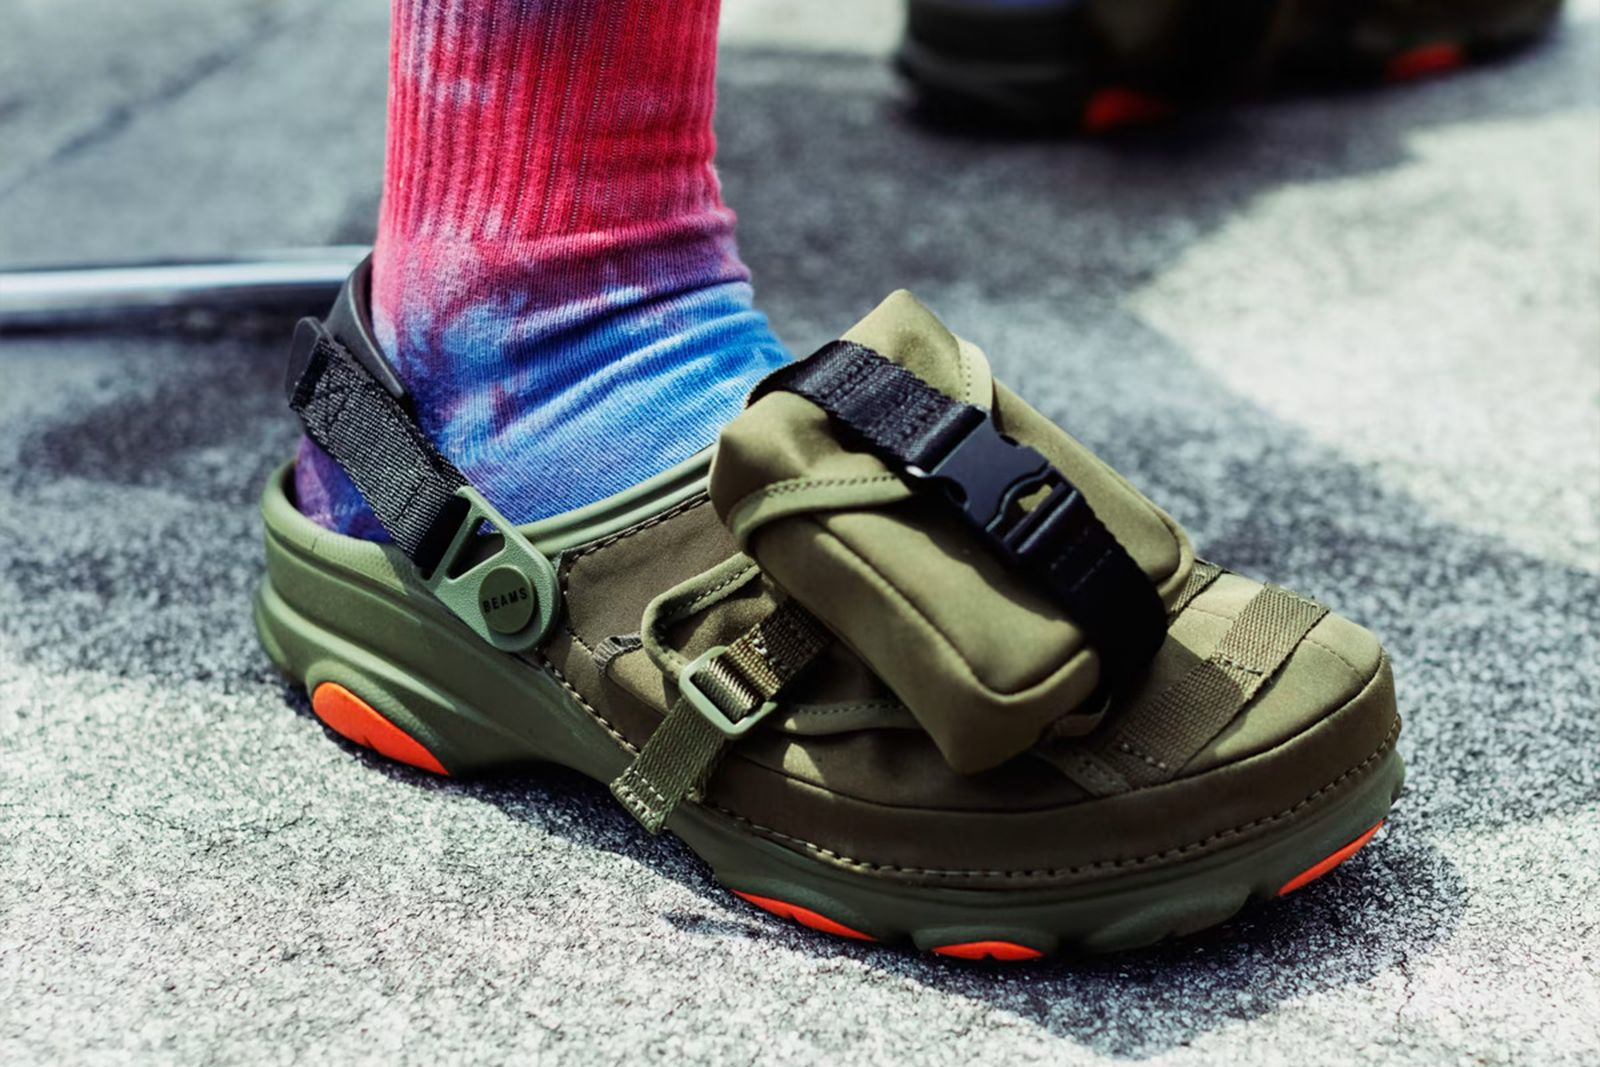 most-comfortable-sneakers-06